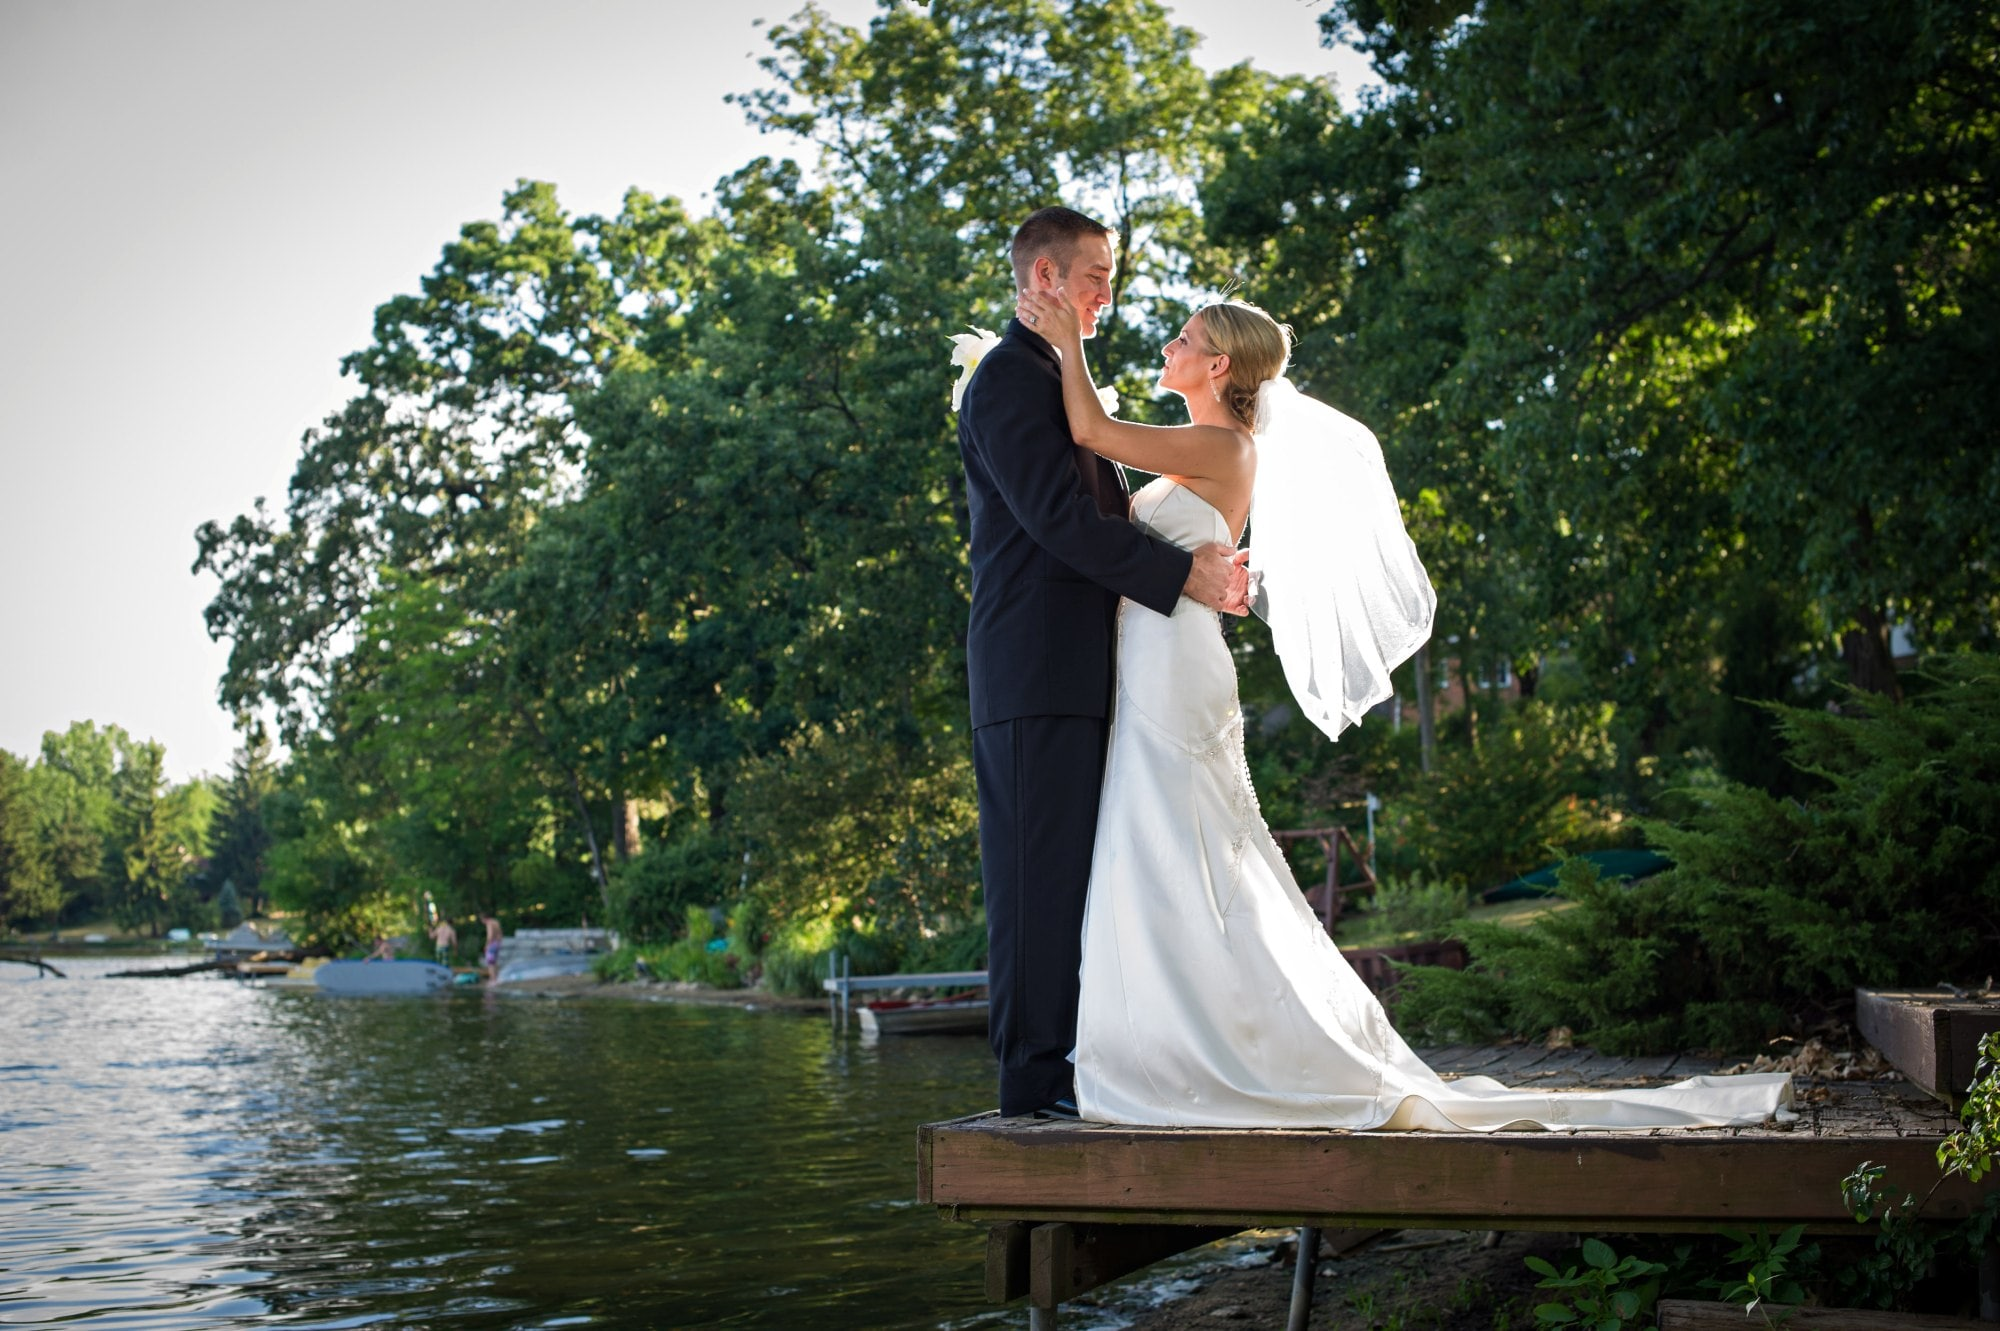 man in black suit kissing woman in white wedding dress on brown wooden dock during daytime